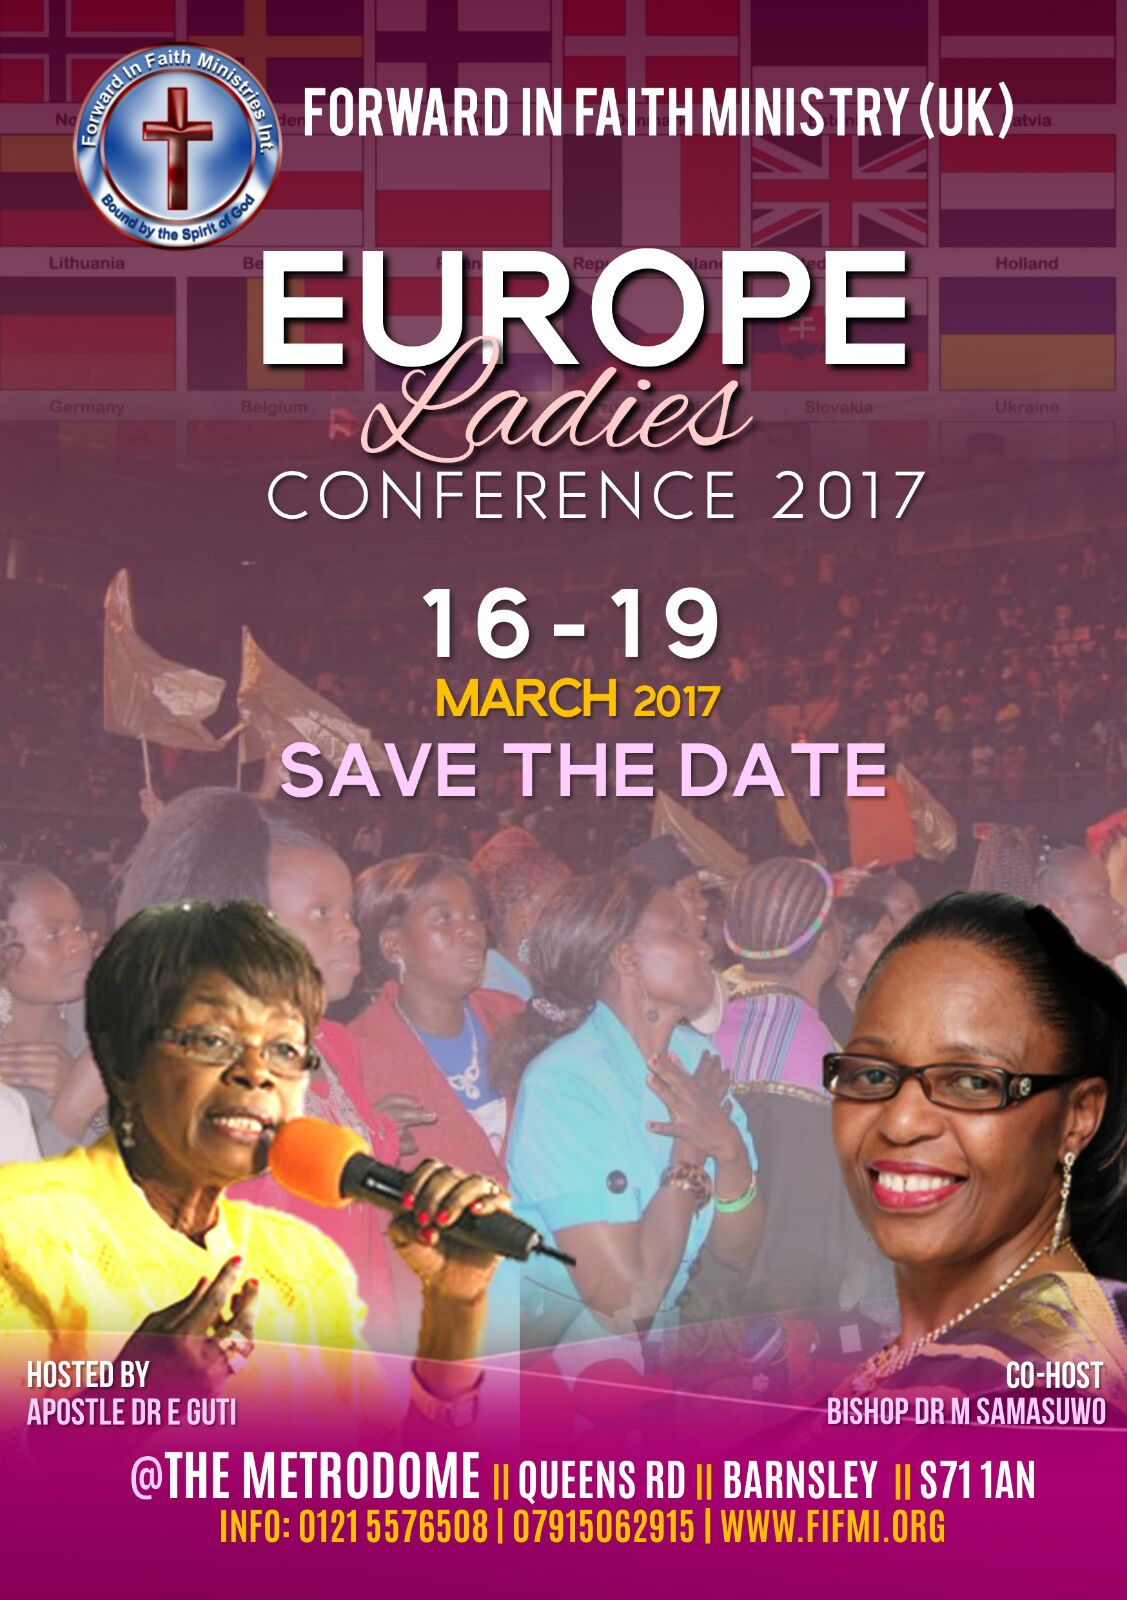 2017 Europe Women's Coference Flyer